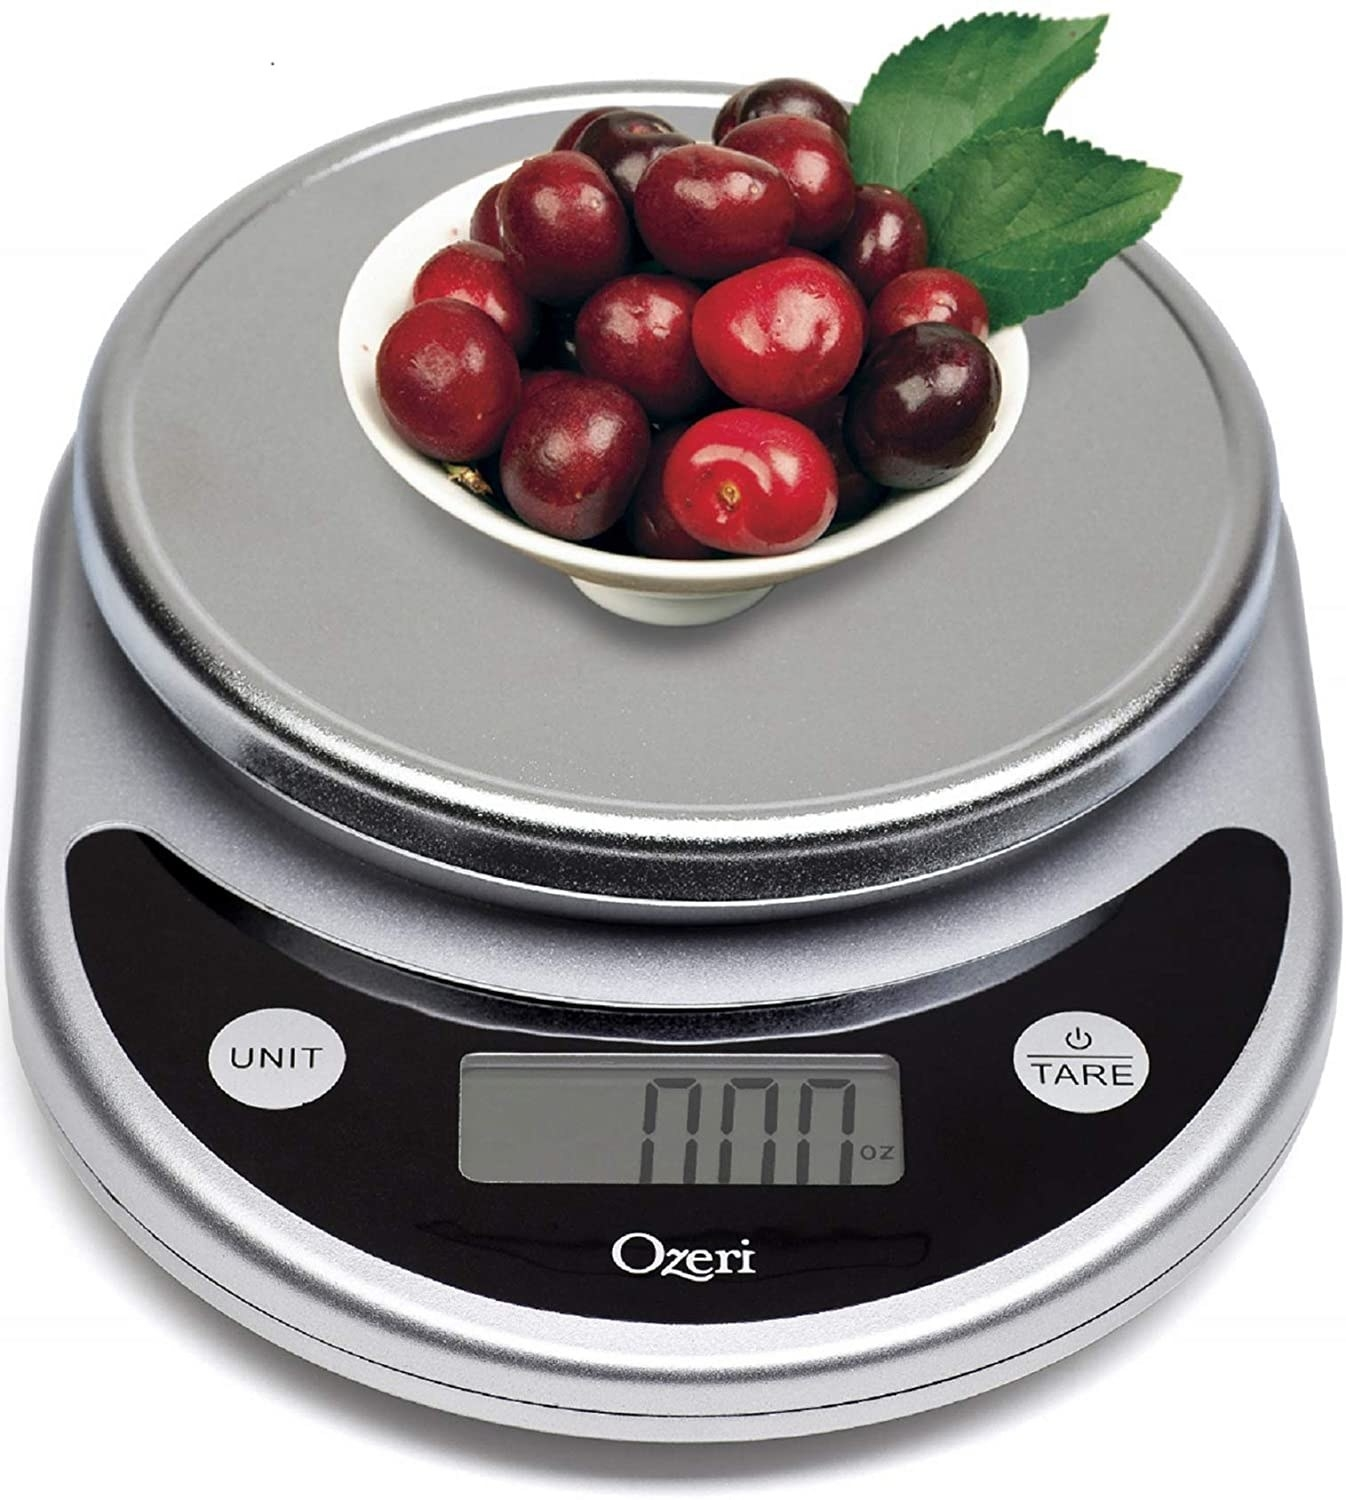 A digital food scale with cherries on top